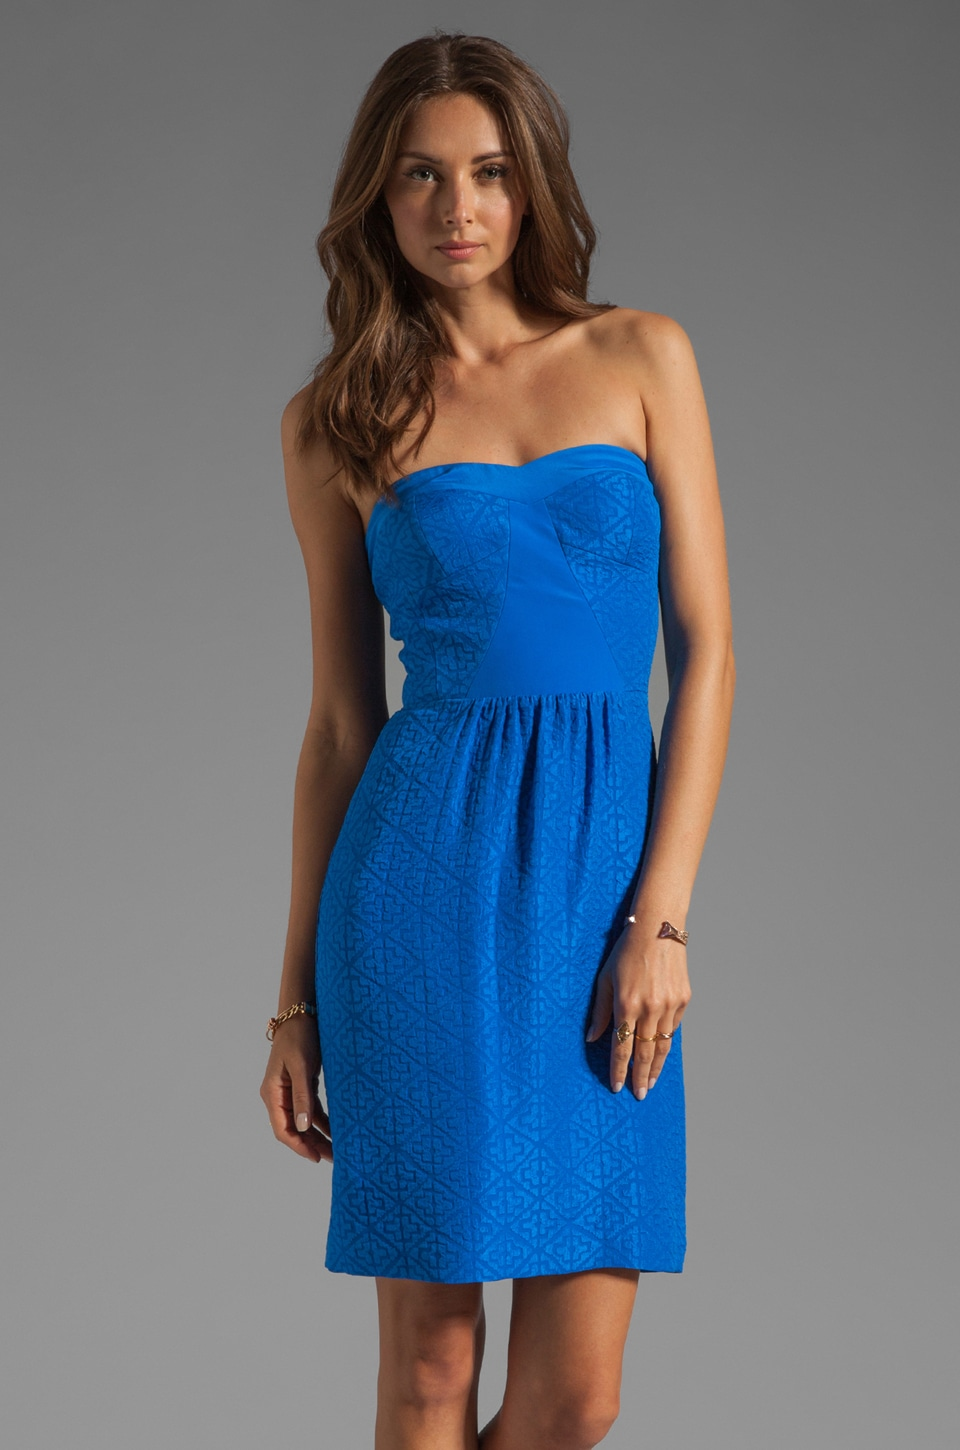 Rebecca Taylor Aztec Strapless Dress in Sapphire